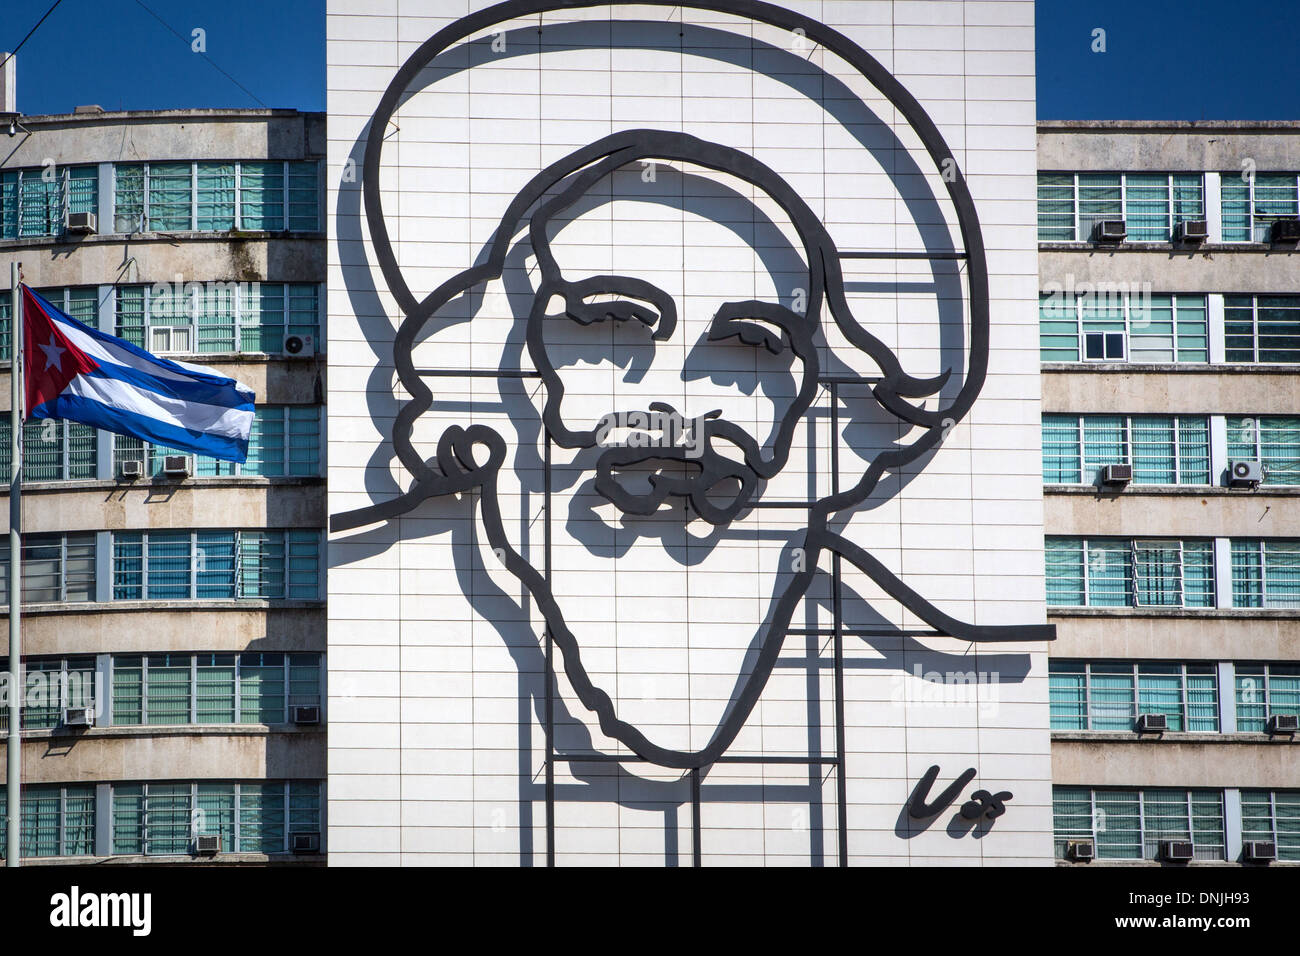 PORTRAIT OF FIDEL CASTRO, ONE OF THE LEADERS OF THE CUBAN REVOLUTION, ON A BUILDING'S FAÇADE, REVOLUTION SQUARE, PLAZA DE LA REVOLUCION, HAVANA, CUBA, THE CARIBBEAN - Stock Image